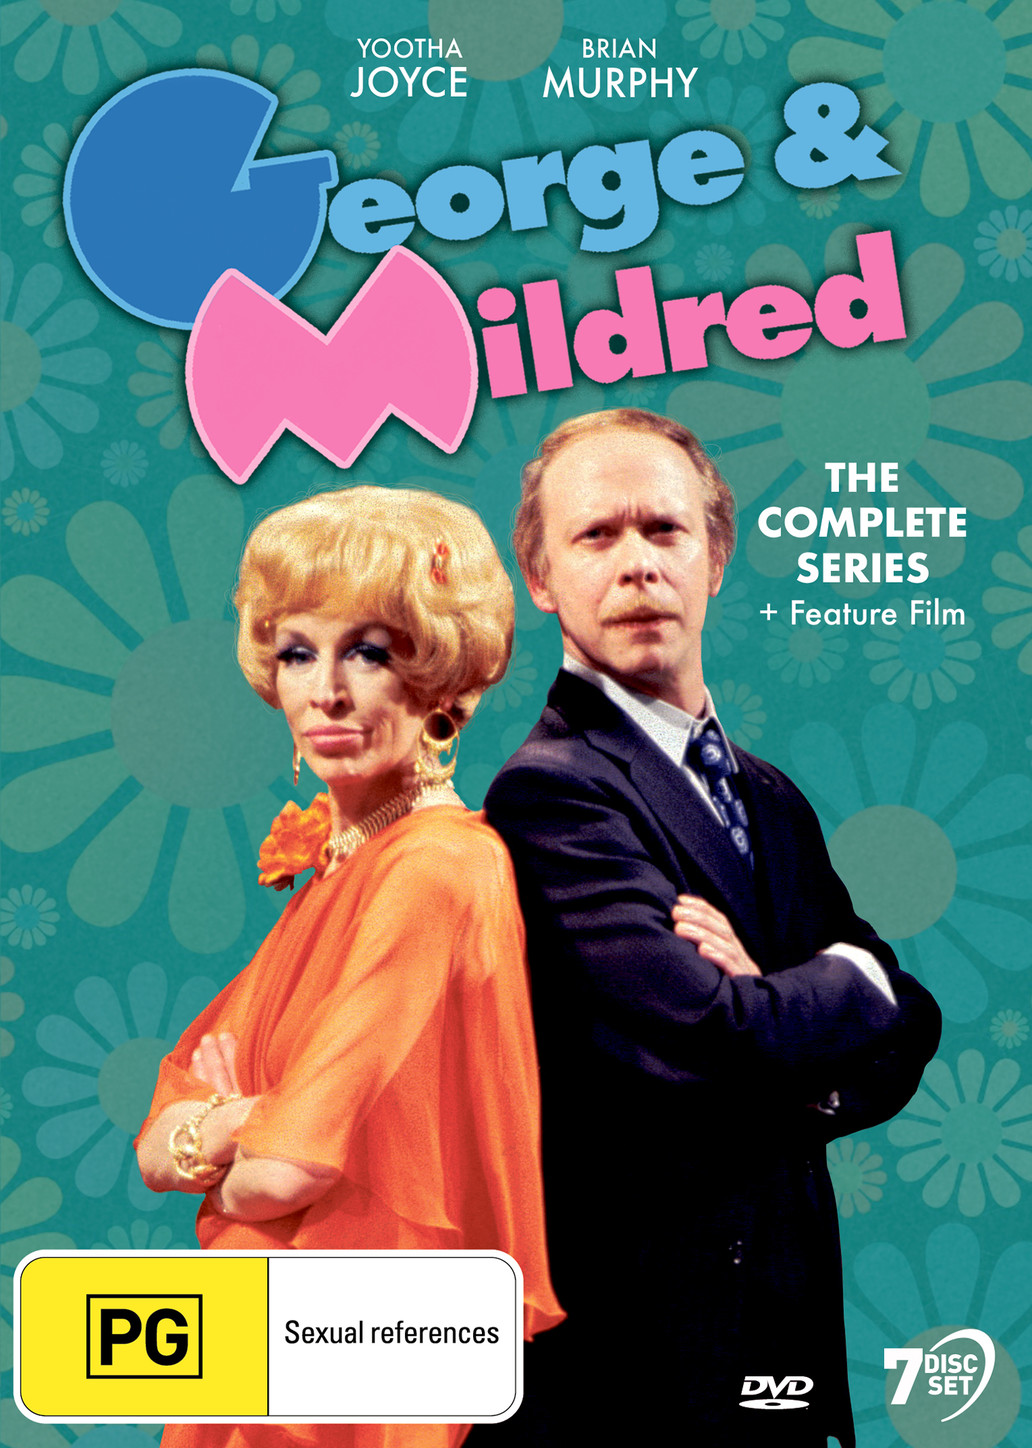 Yootha Joyce and Brian Murphy in George & Mildred (1976)